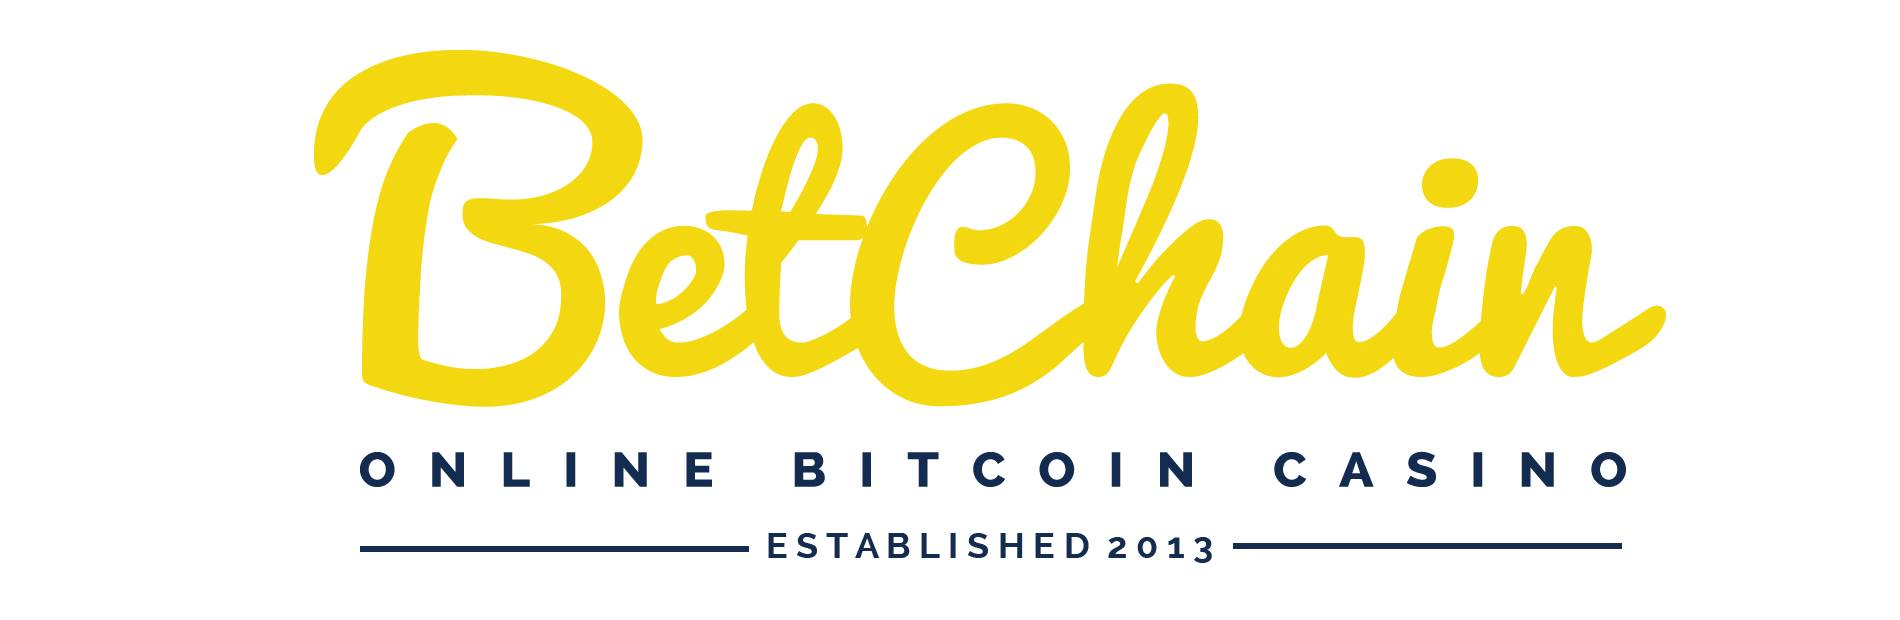 BetChain is a popular Bitcoin and alt coin gambling destination